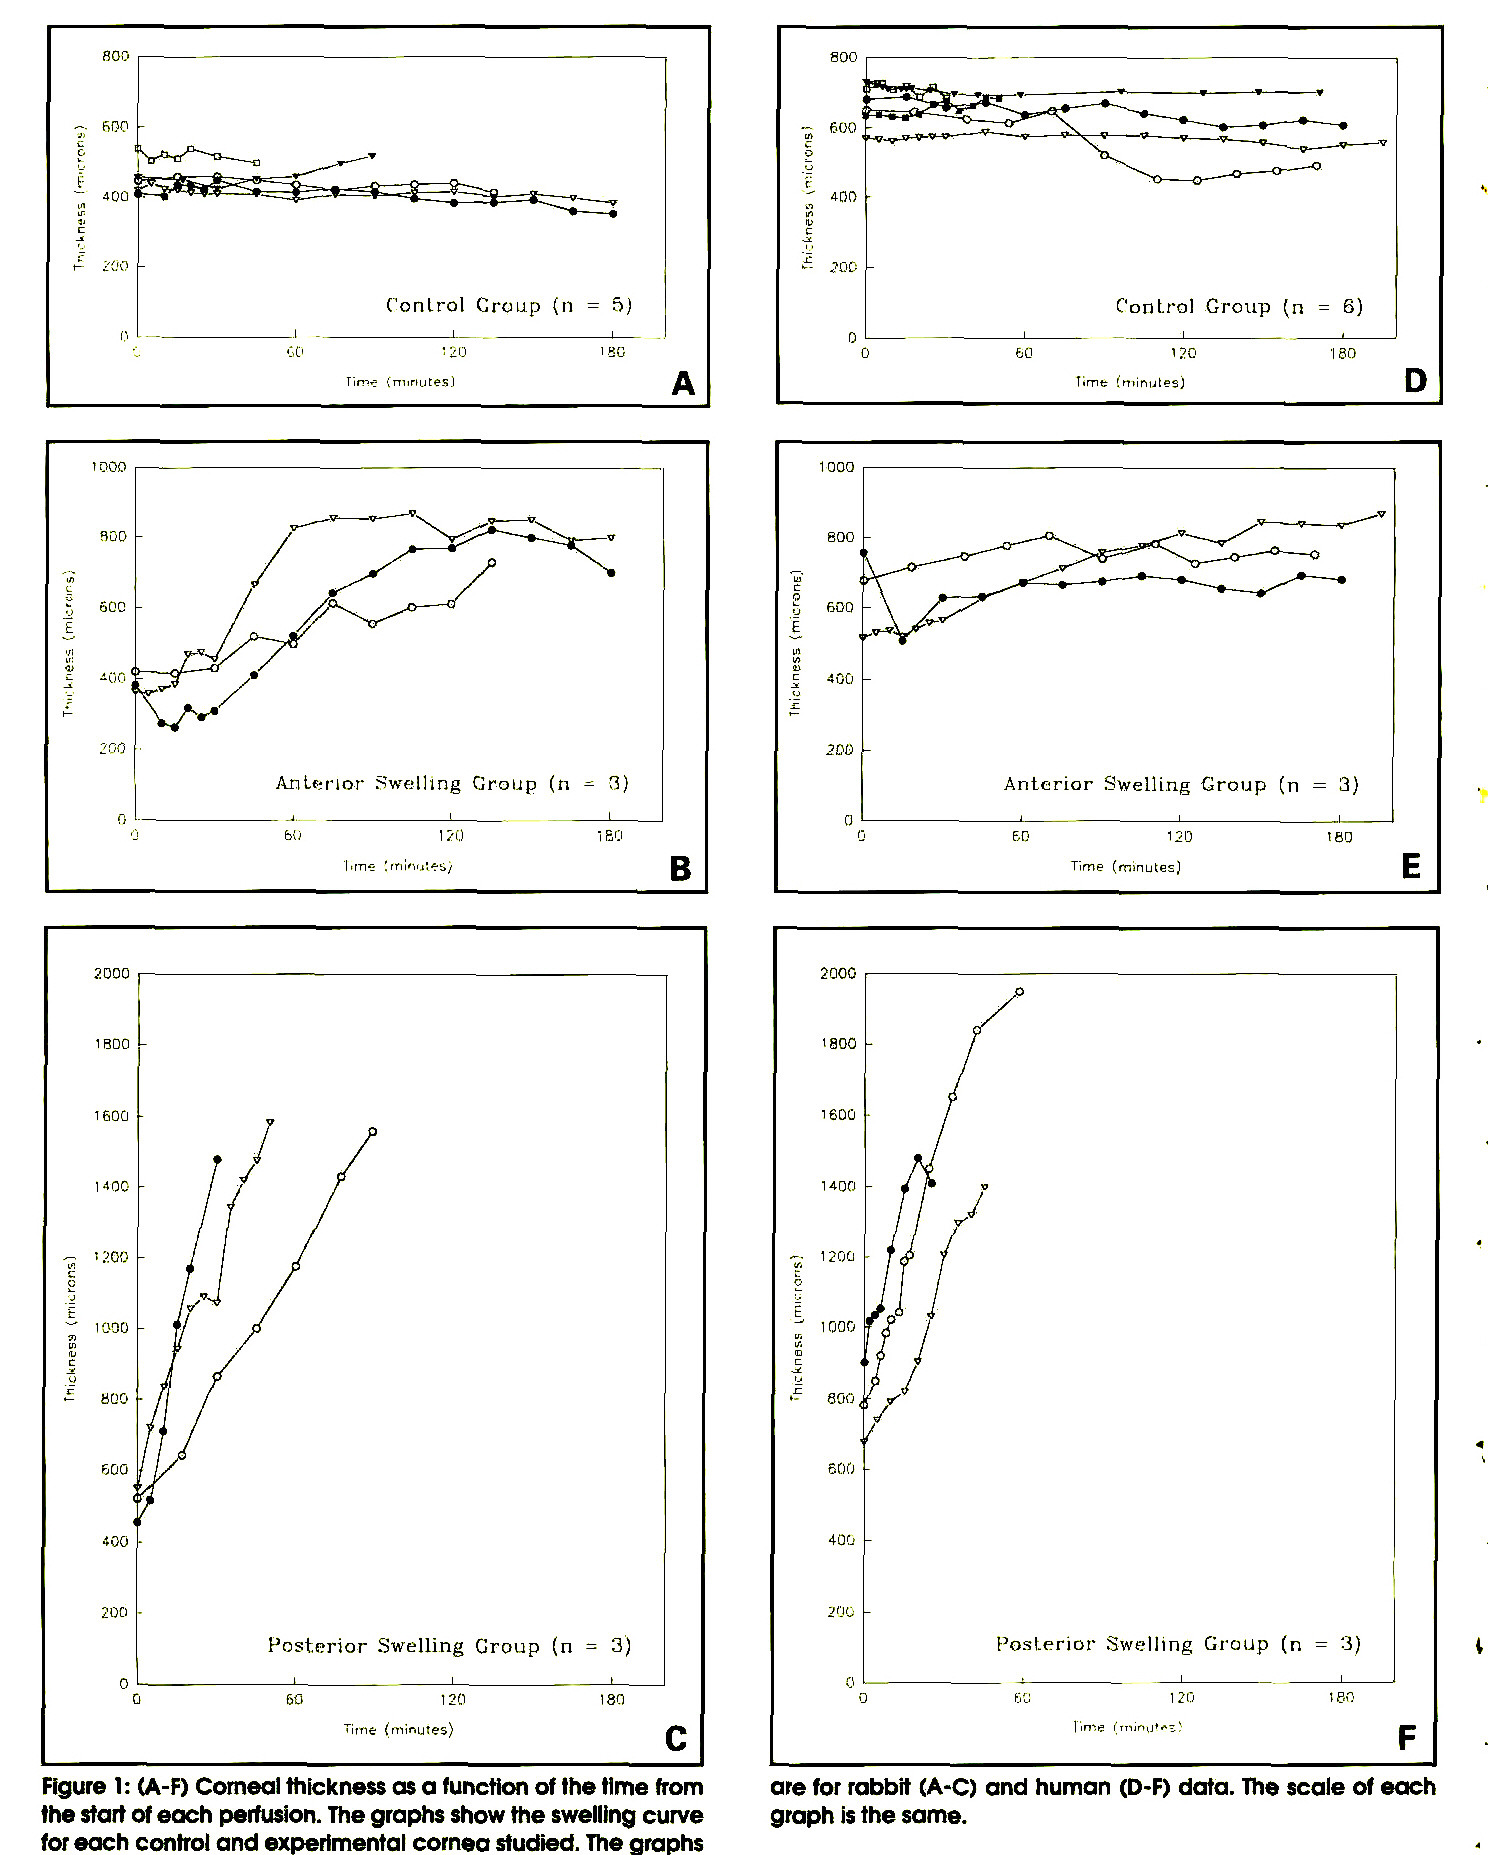 Figure 1: (A-F) Corneal thickness as a function of the time from the start of each perfusion. The graphs show the swelling curve for each control and experimental cornea studied. The graphs are for rabbit (A-C) and human (D-F) data. The scale of each graph is the same.